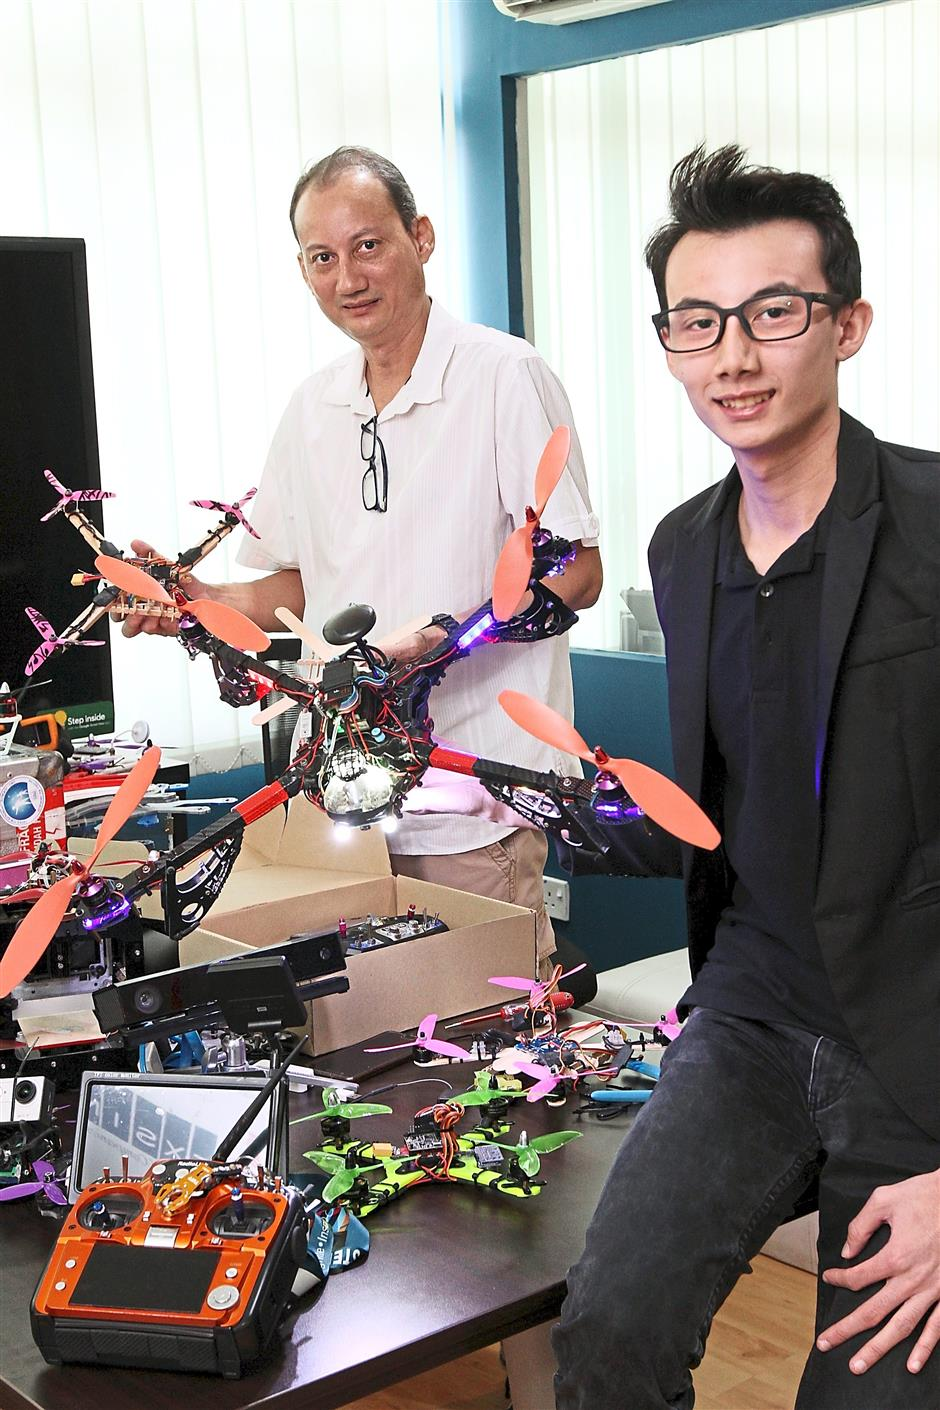 William (left) and Daryl use drones to teach kids about science and technology.